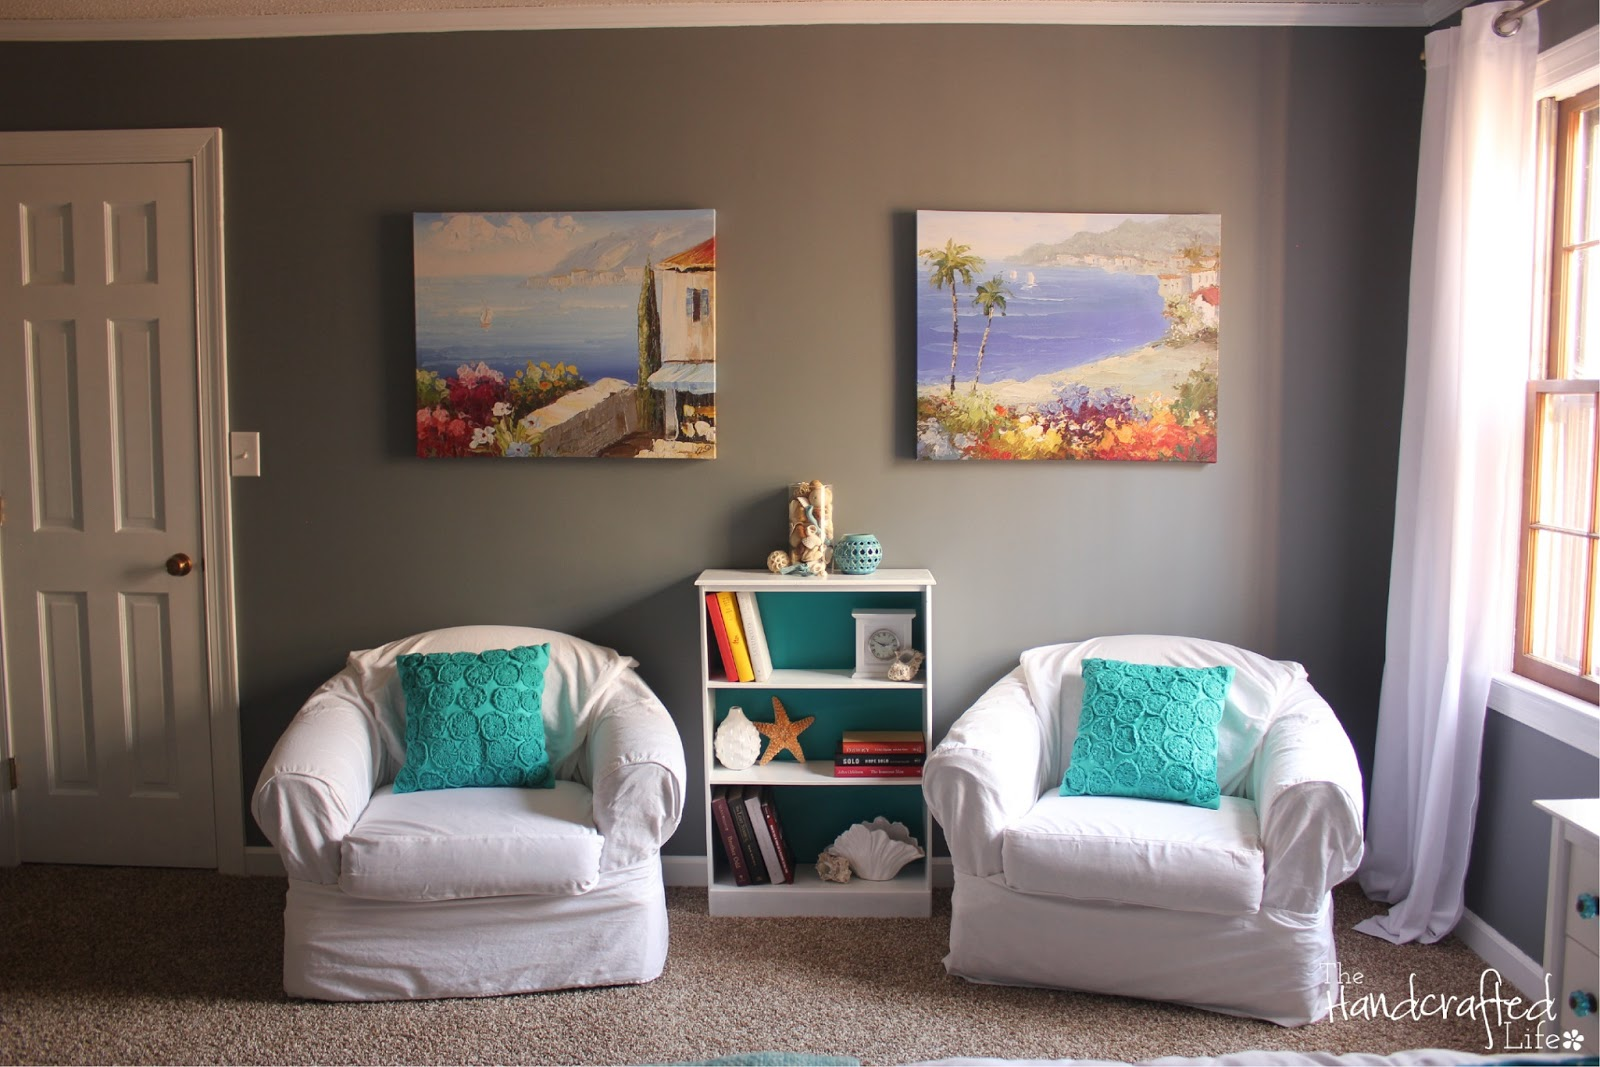 The Handcrafted Life*: Teal, White and Grey Guest Bedroom Reveal